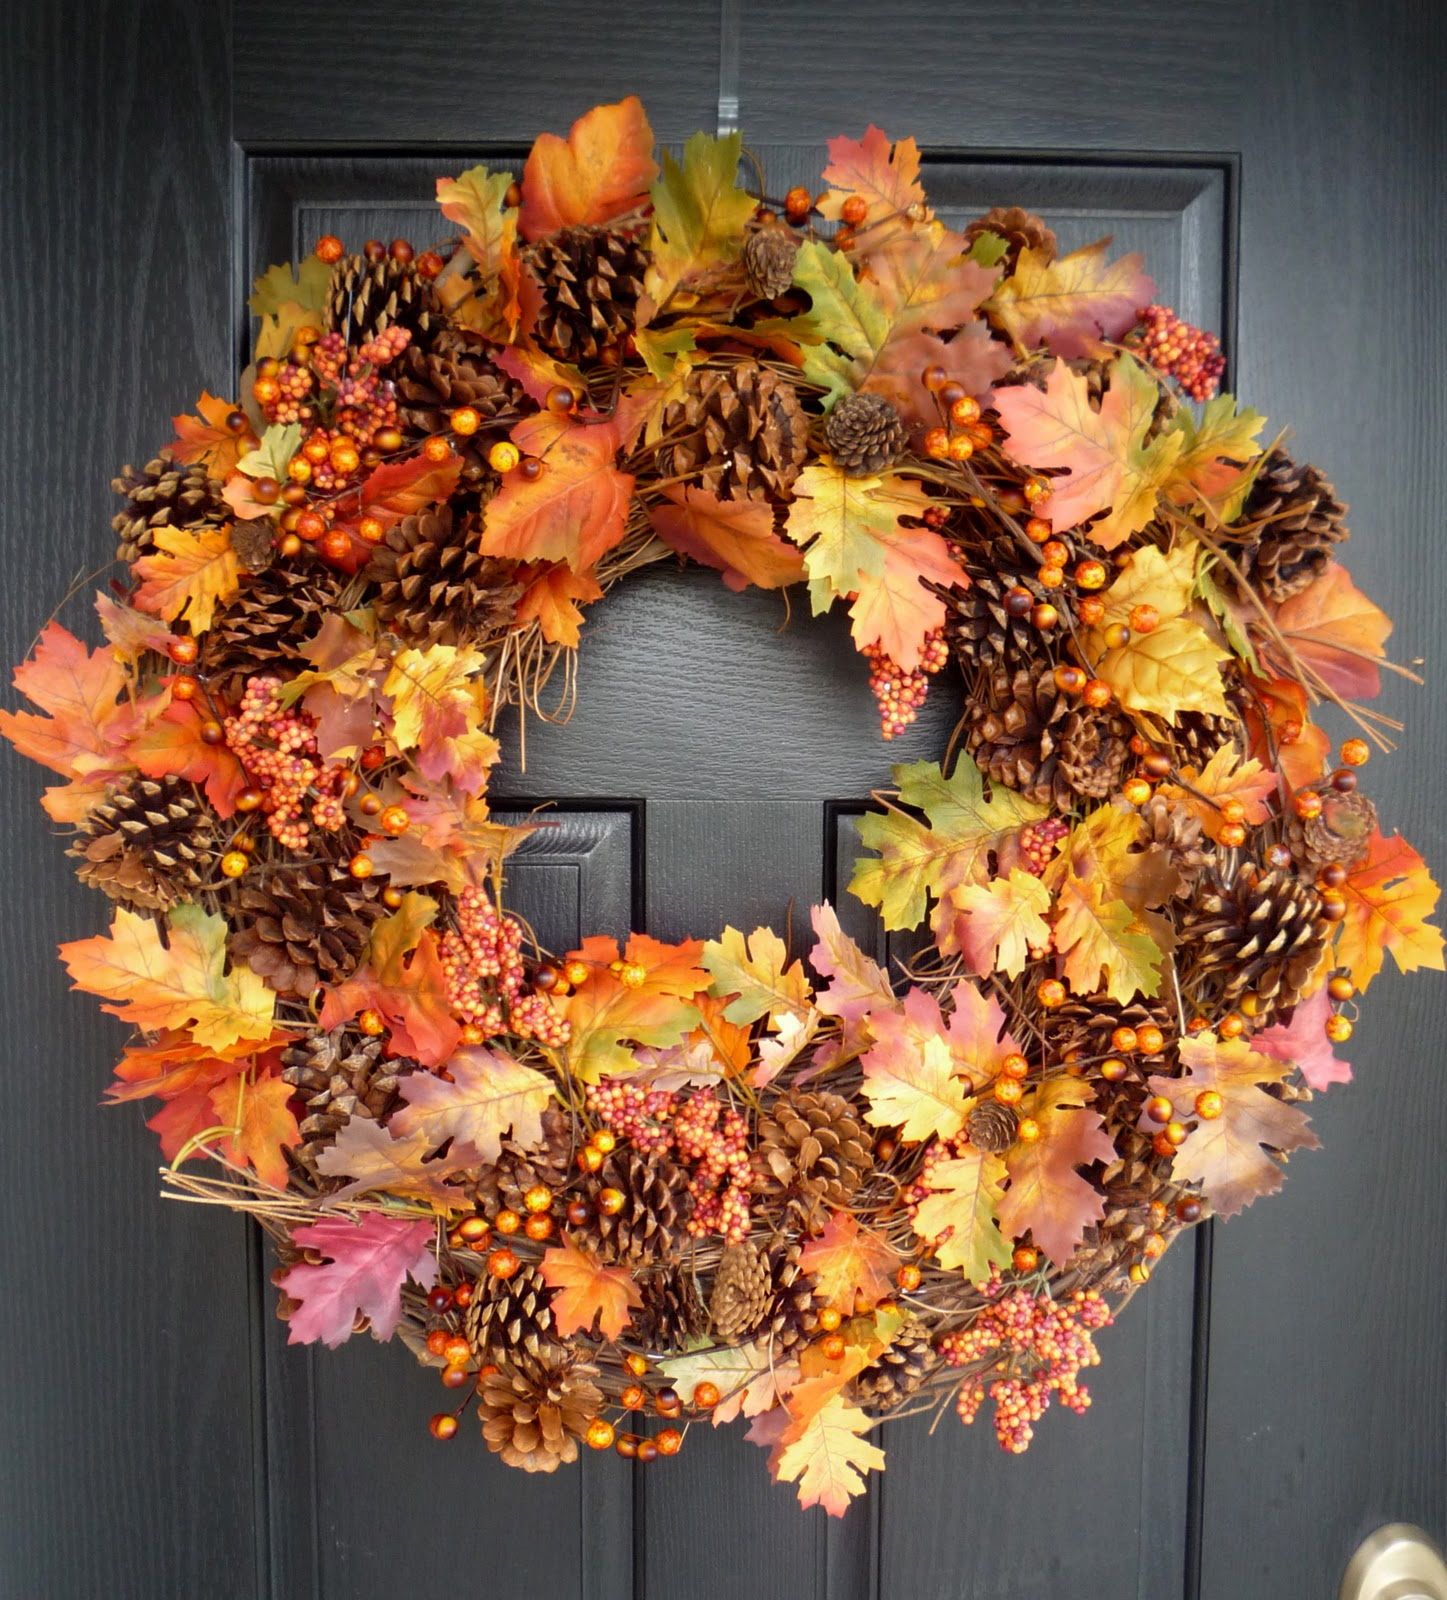 Crafty sisters plump fall wreath for Fall diy crafts pinterest